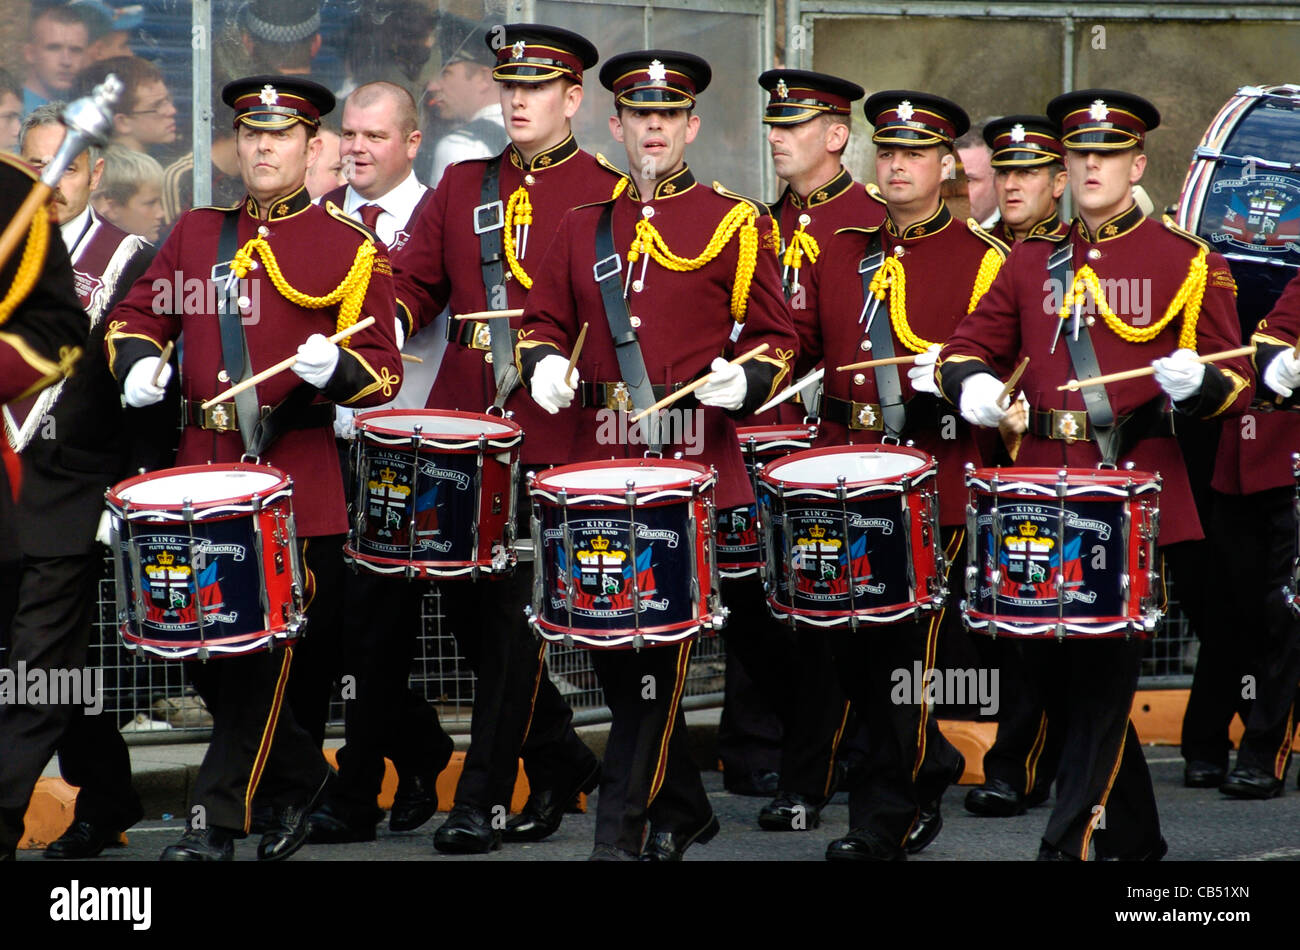 A loyalist band playing at  an Apprentice Boys of Derry parade, Londonderry, Northern Ireland. - Stock Image